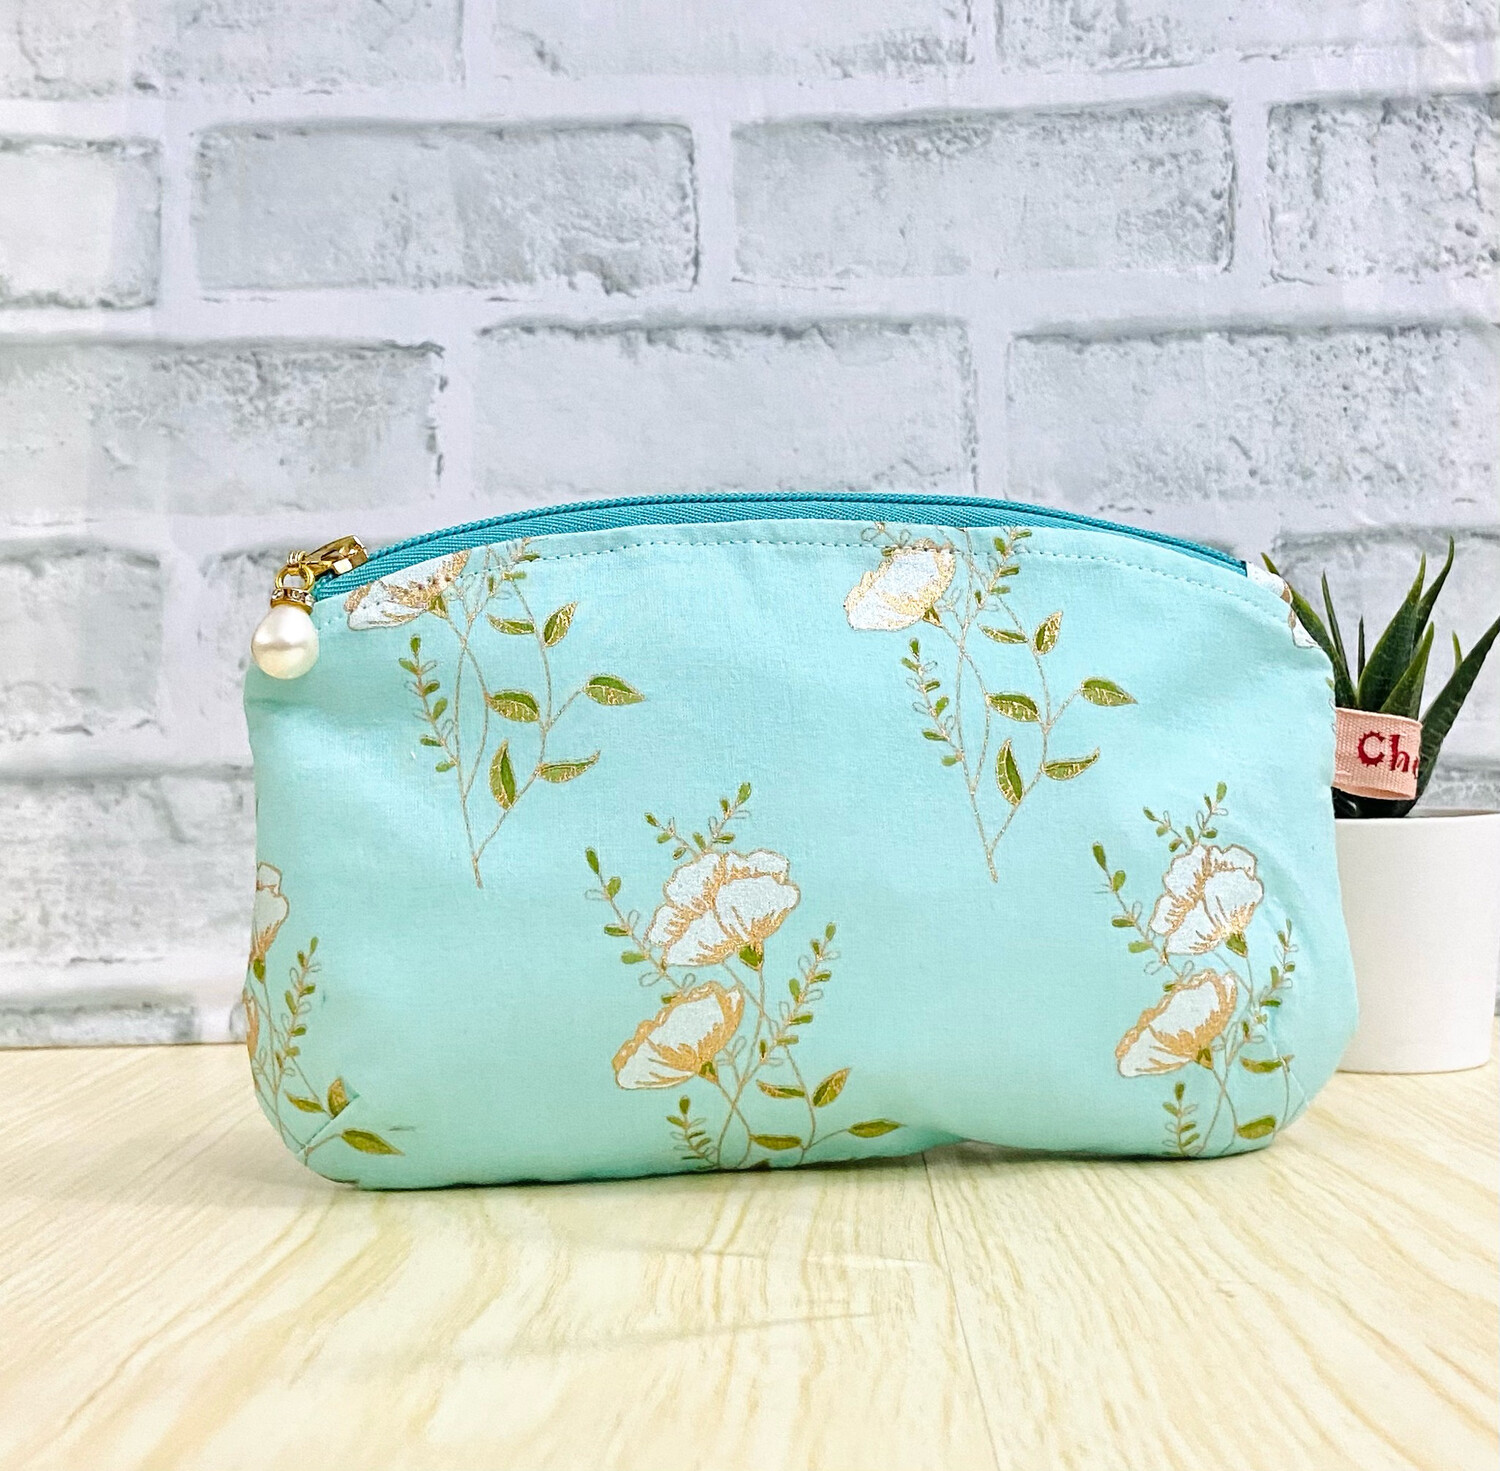 Pretty Floral Makeup Pouch - Mint Green